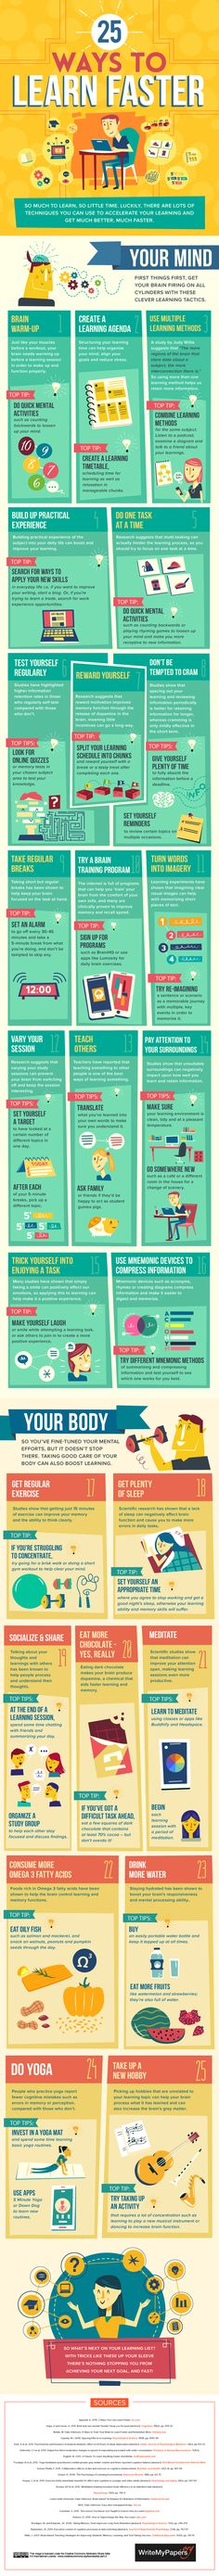 Ways to Learn Faster (Infographic) Try these tips to speed up your cognitive processes. MoreTry these tips to speed up your cognitive processes. E Learning, Learning Styles, Learning Methods, Learning Techniques, Blended Learning, Lerntyp Test, Learn Faster, Study Help, Educational Websites